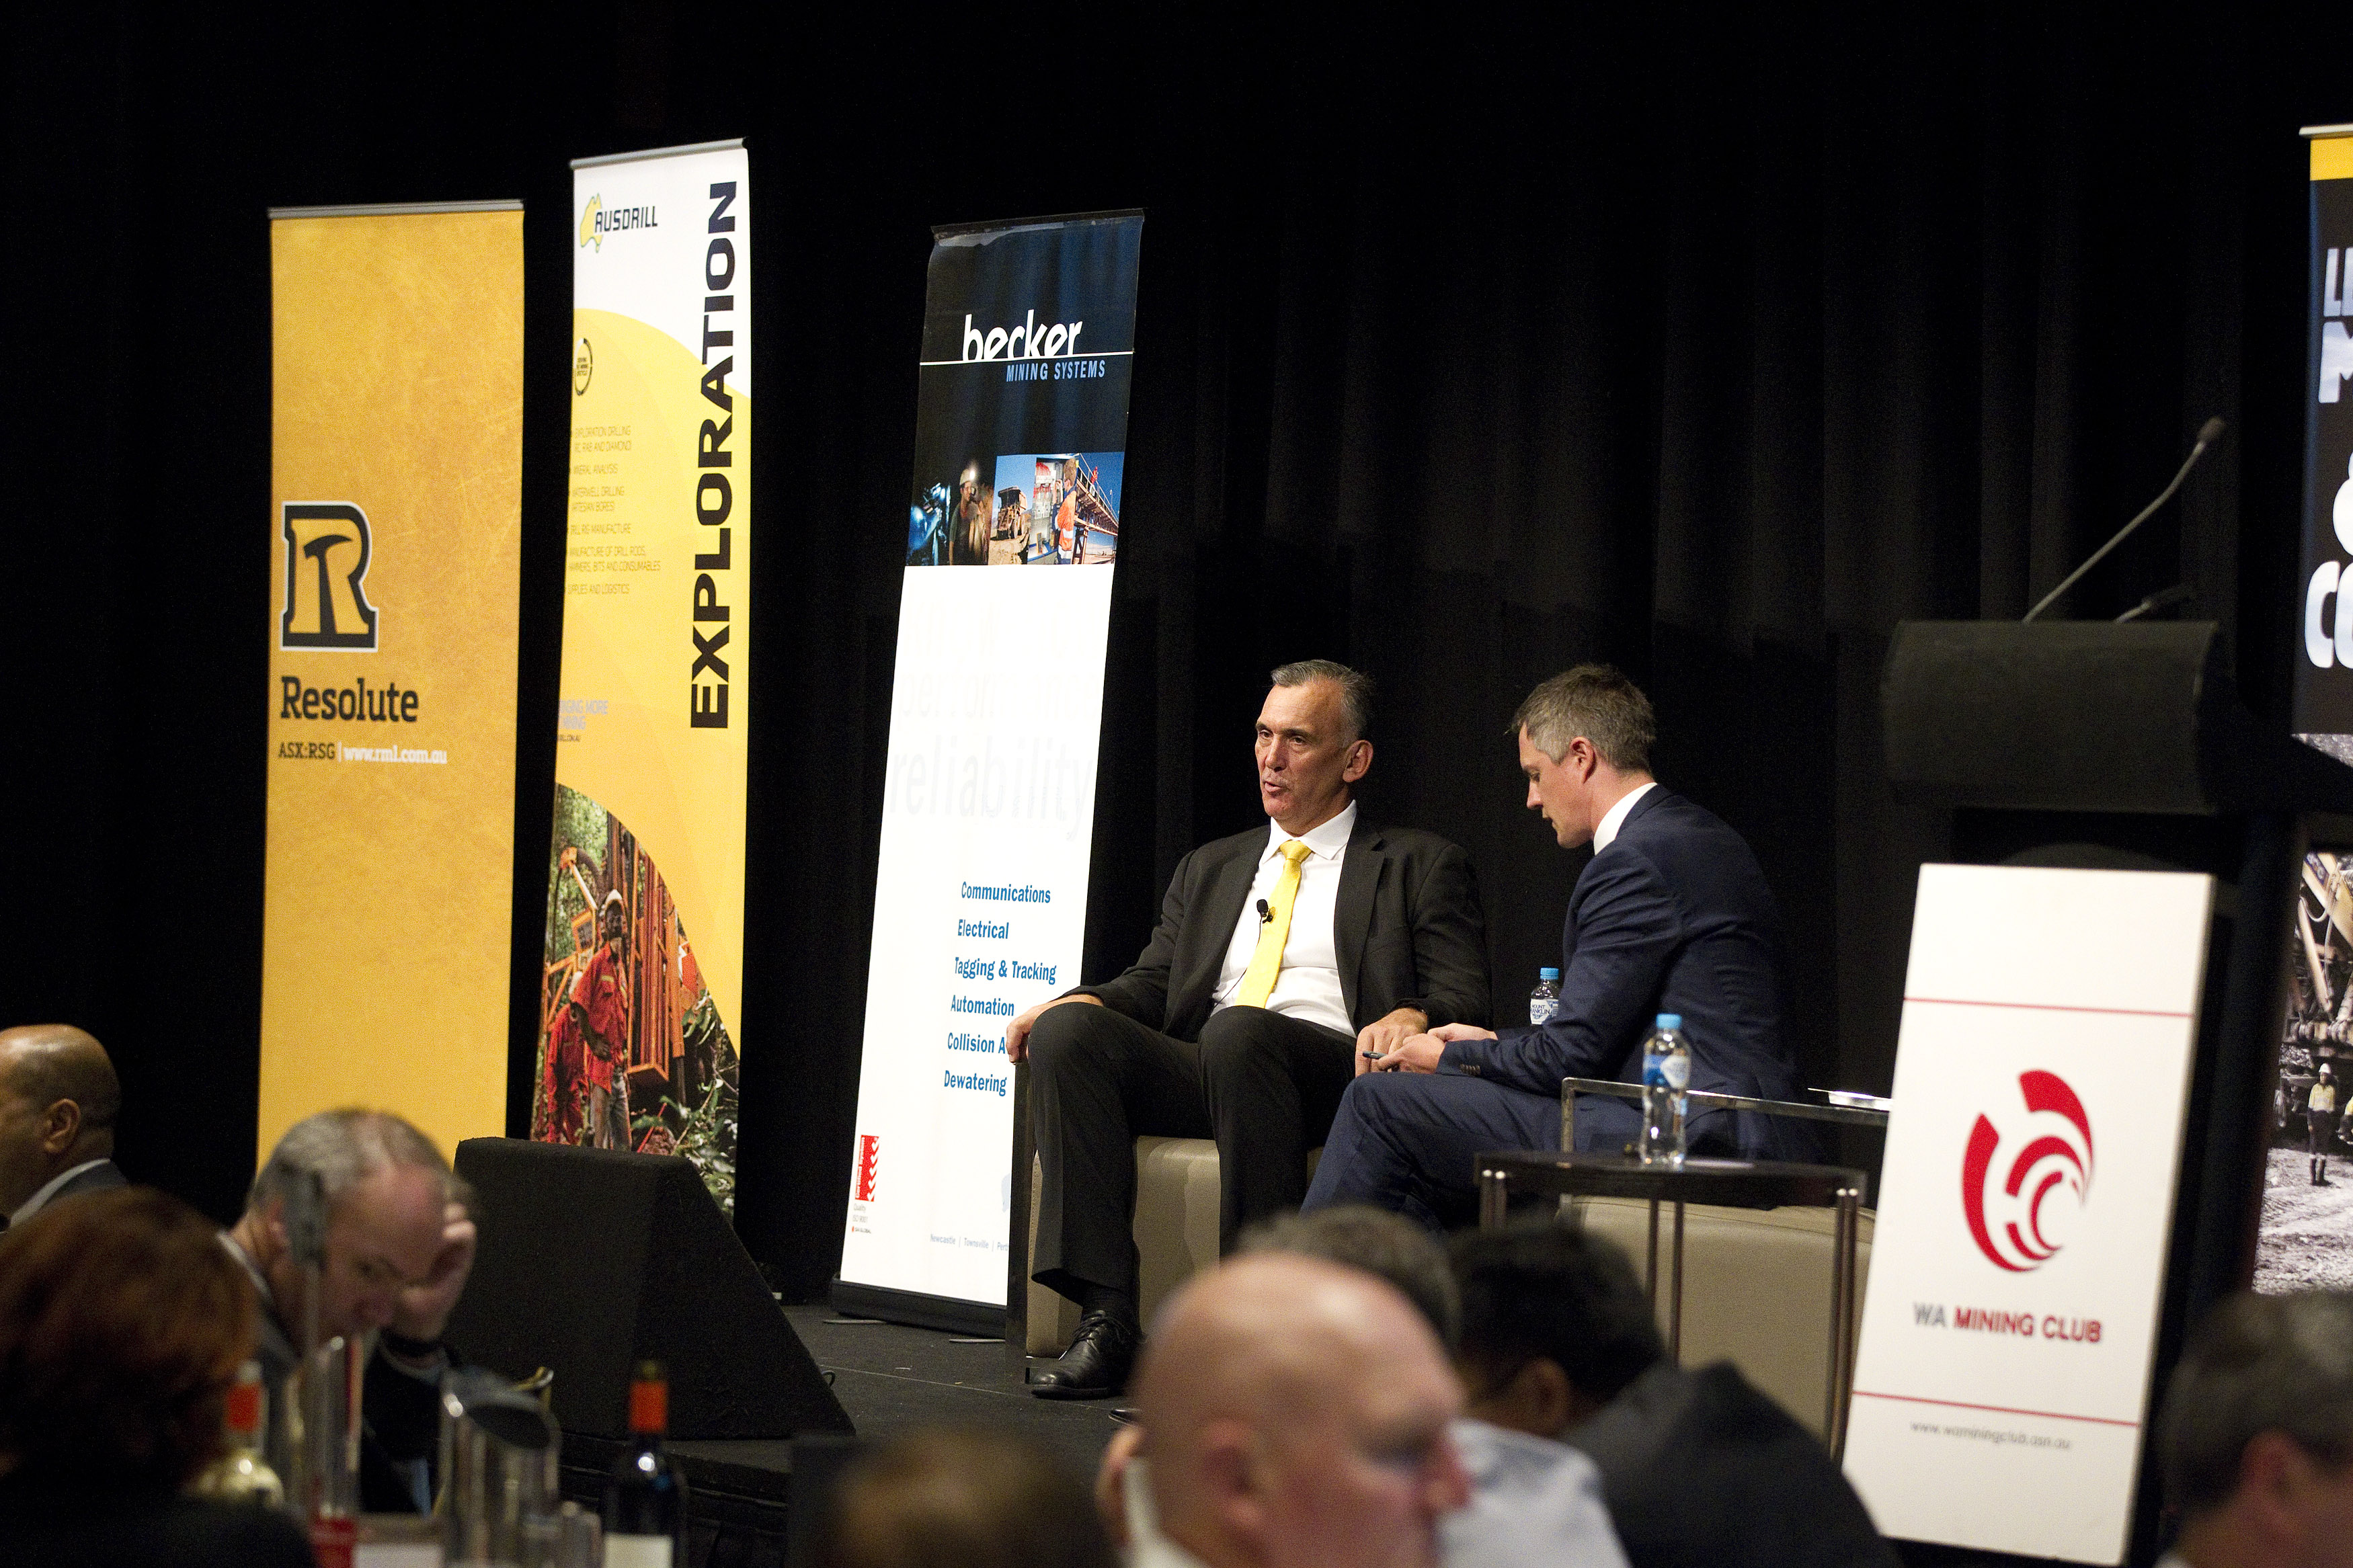 WA Mining Club | March 2017 Luncheon – Minister for Mines